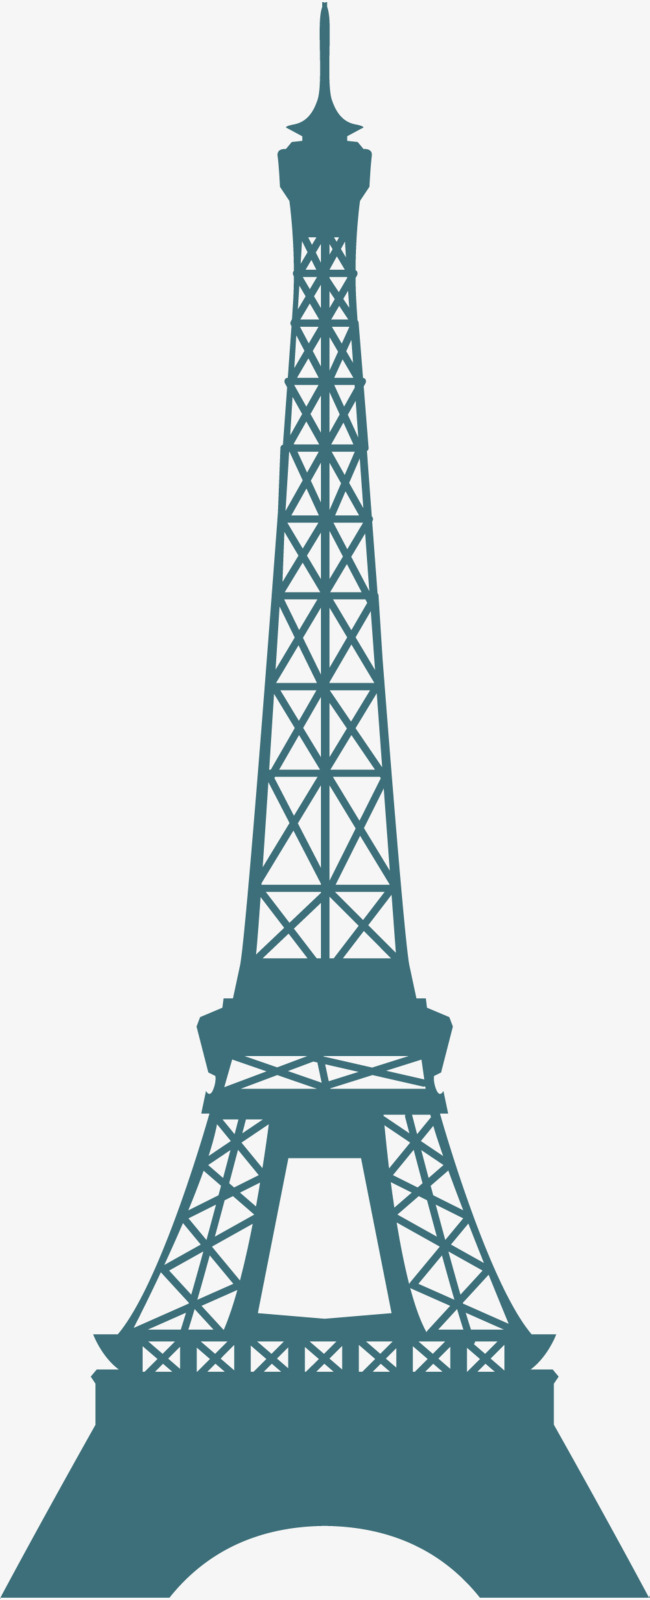 650x1600 Launching Tower, Eiffel Tower, Silhouette, Eiffel Tower Png And